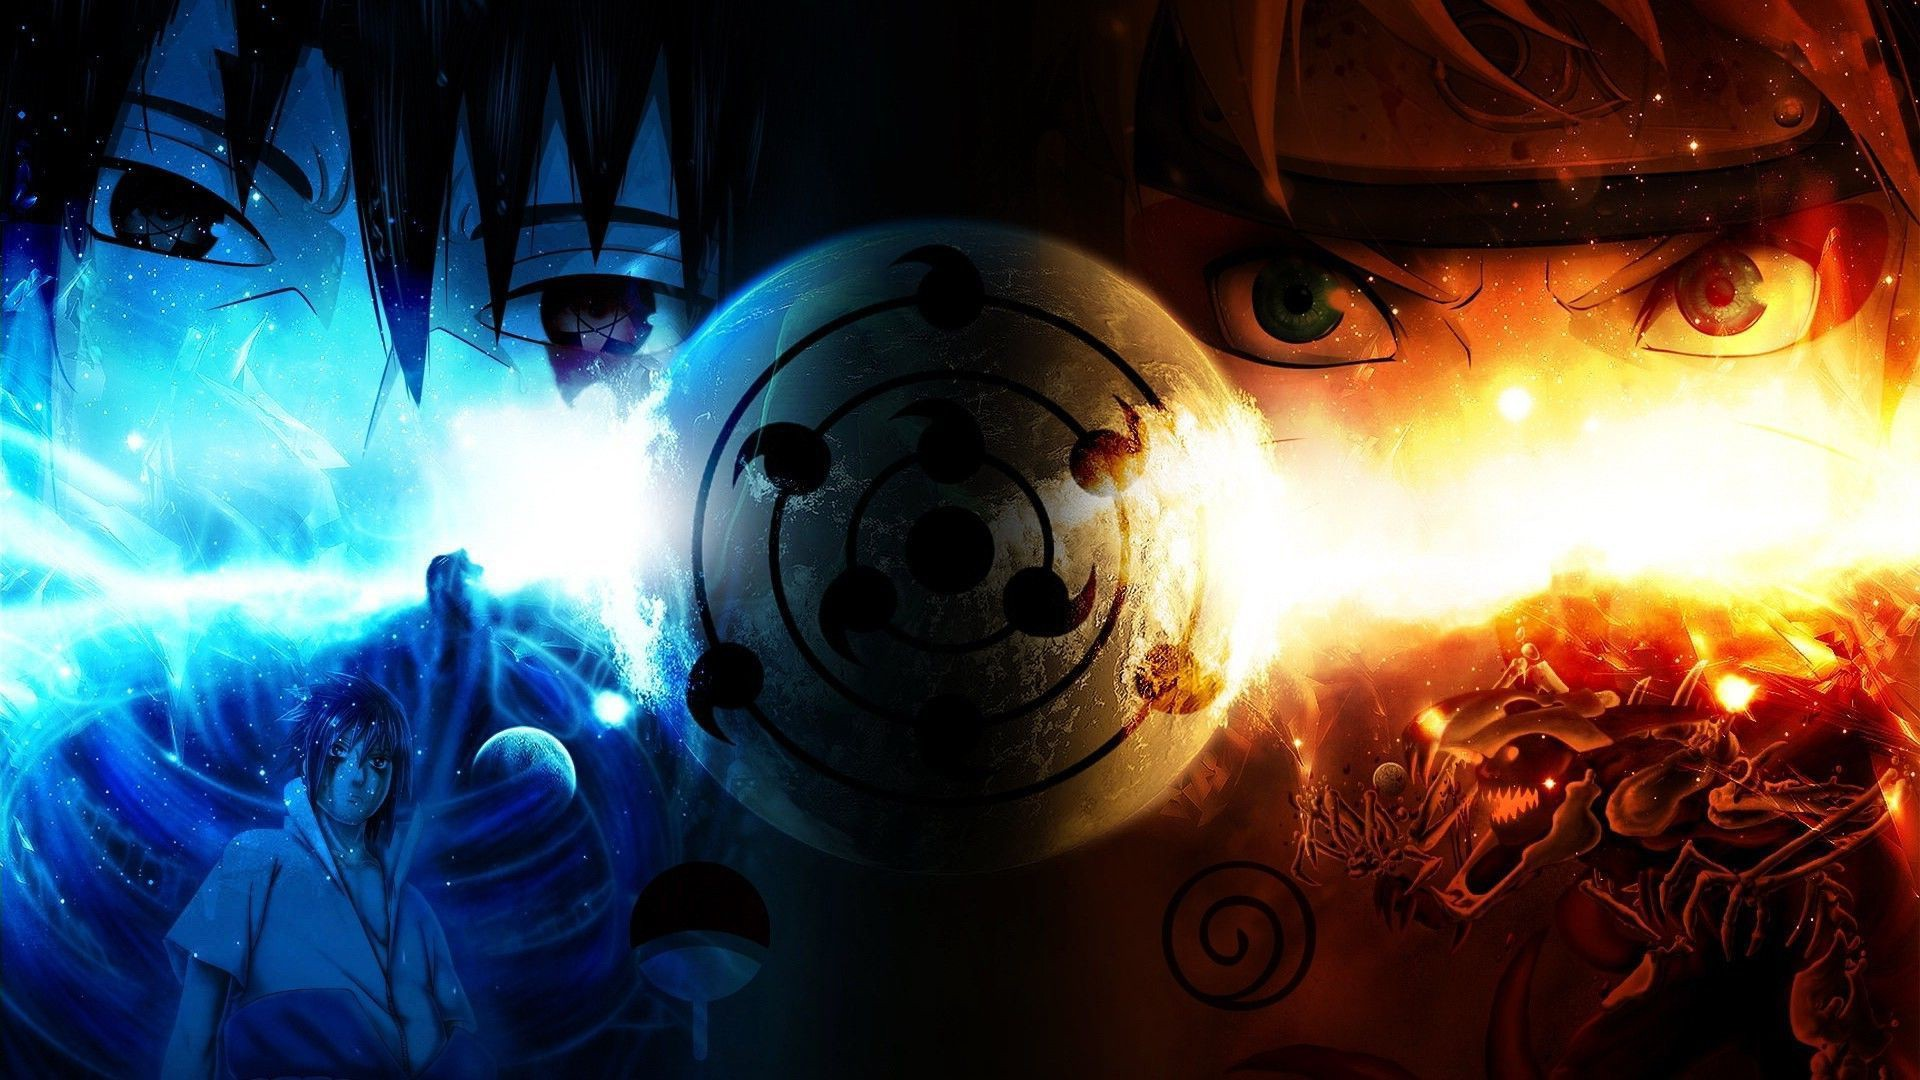 Free download Naruto Fire And Ice HD Anime Wallpaper Desktop Wallpapers 4k High 1920x1080 for ...